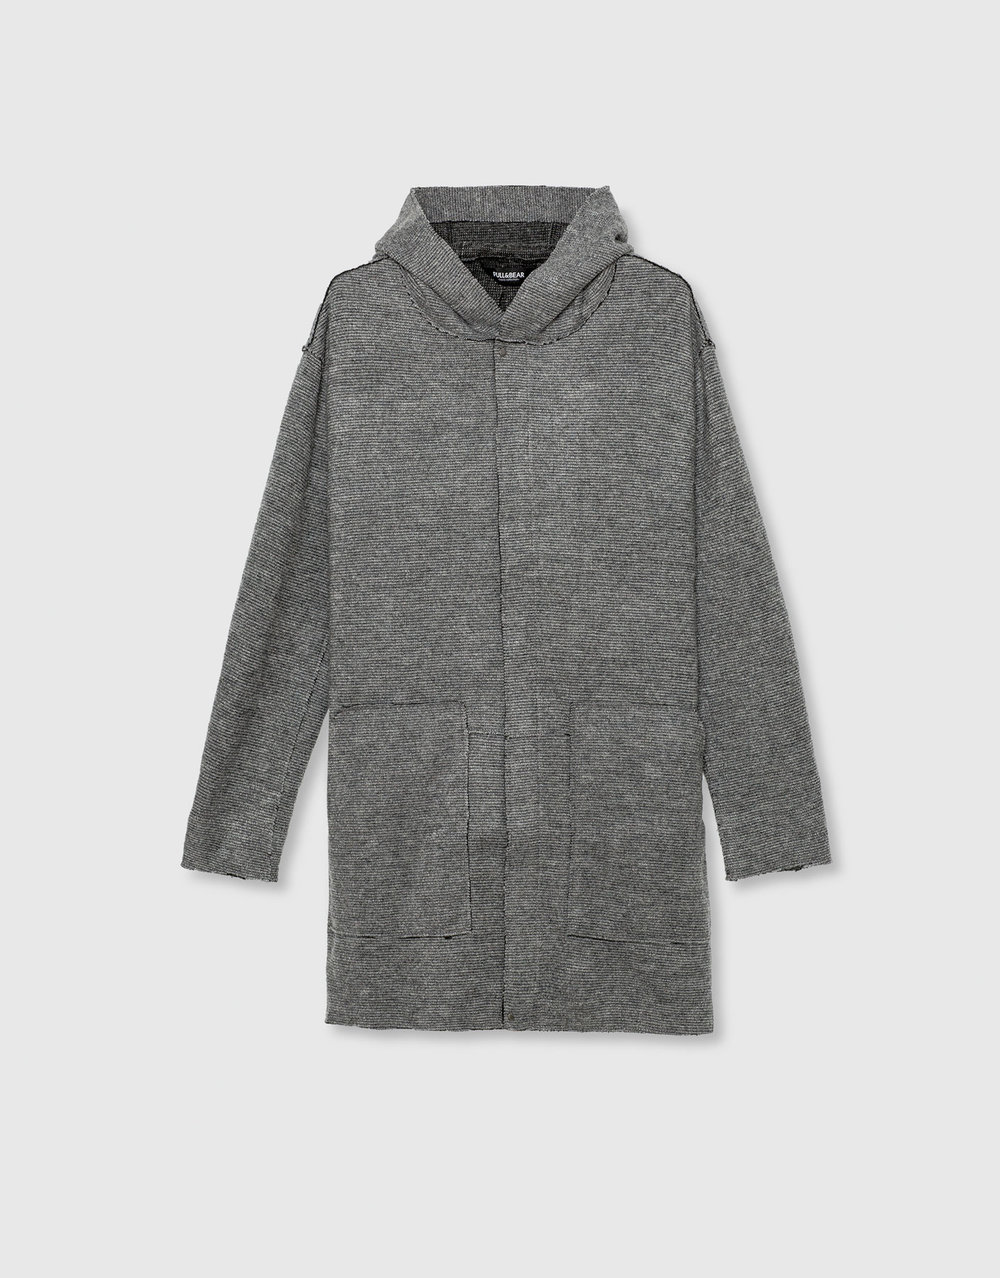 Flowing hooded coat, £49.99 ( pullandbear.com )